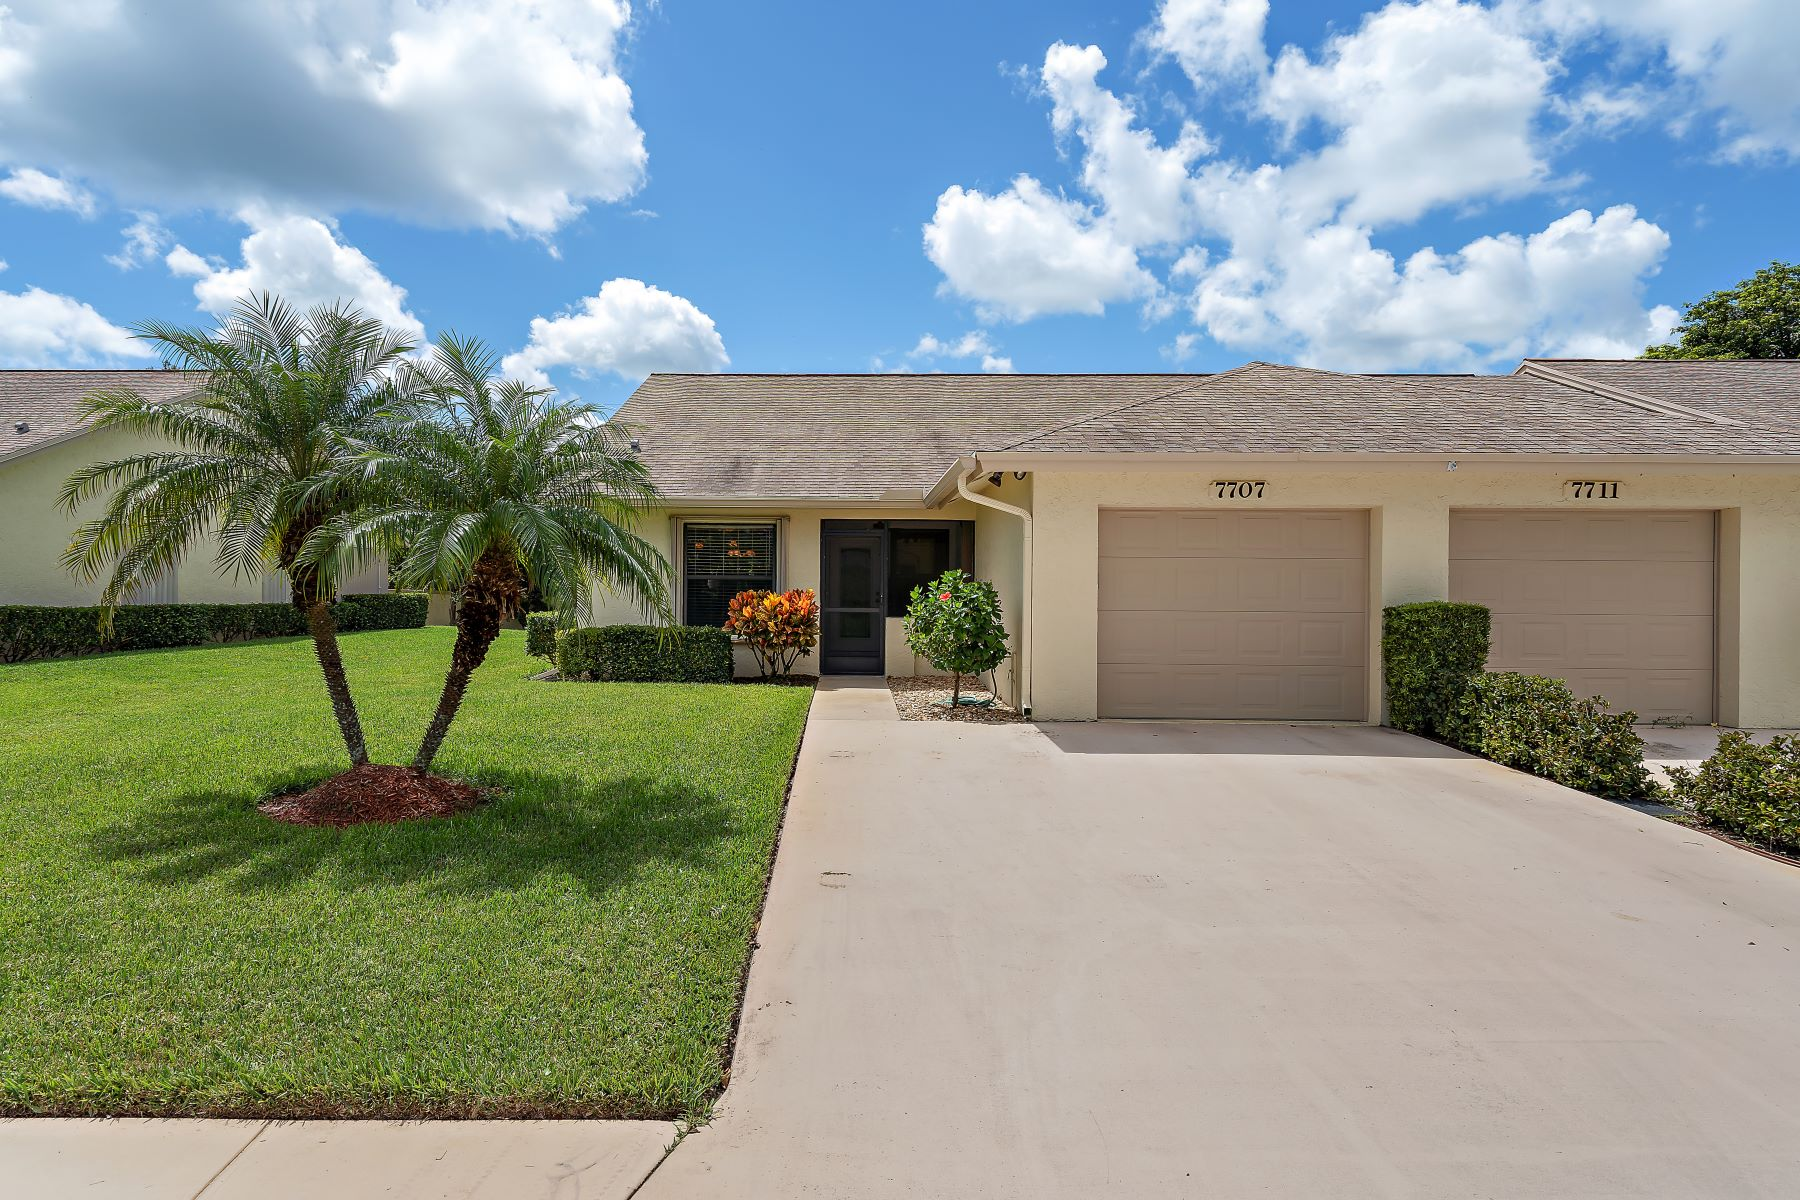 Condominiums for Active at 7707 Se Sugar Sand Circle Hobe Sound, Florida 33455 United States